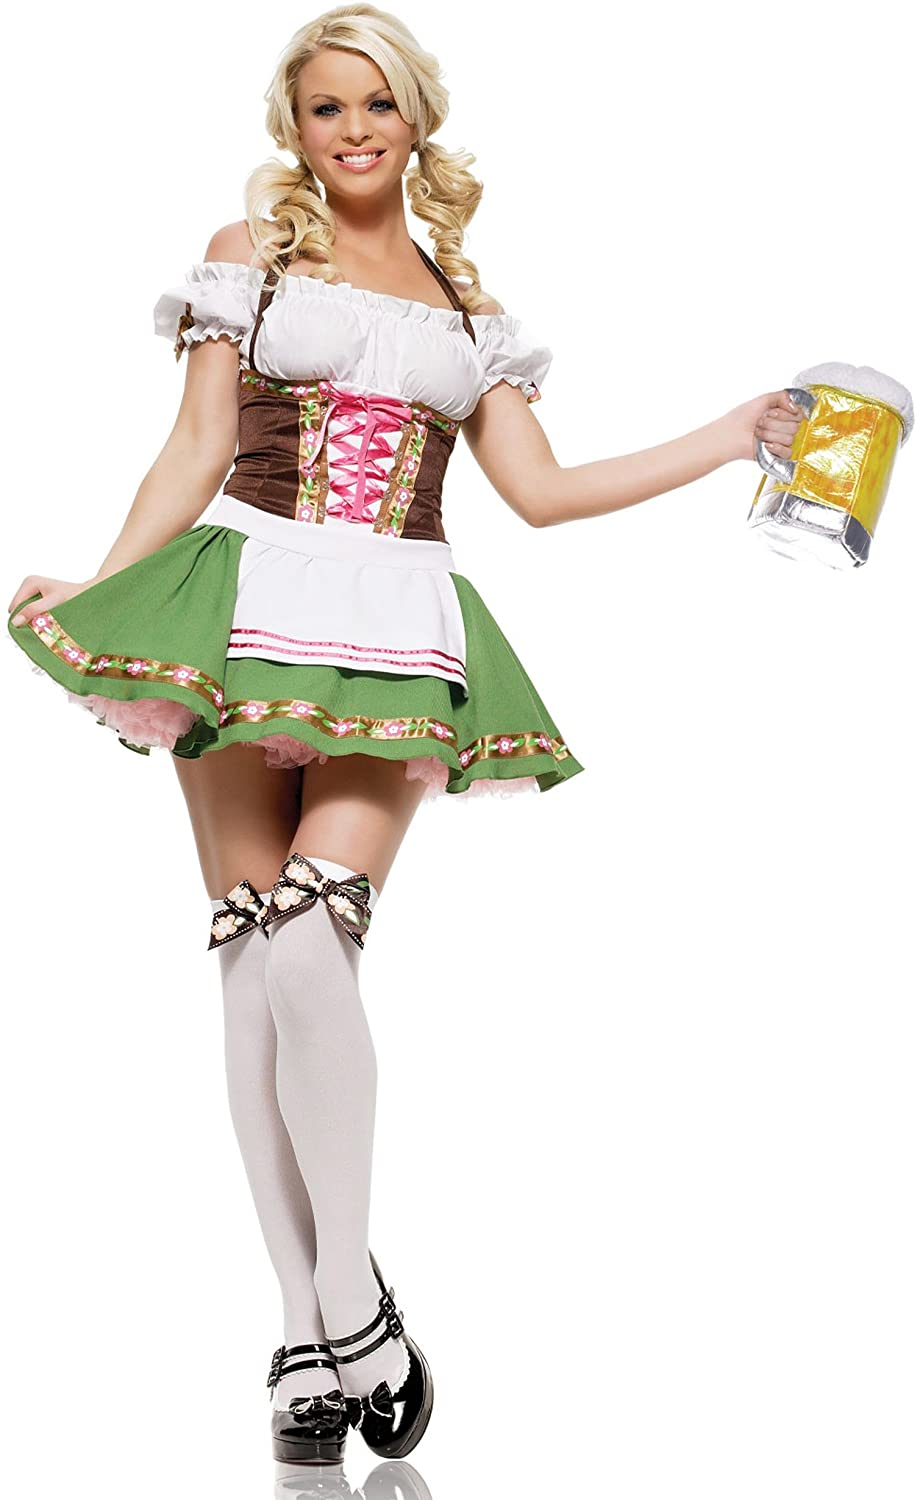 PINSE St. Patrick's Day Oktoberfest Cute Beer Girl Servant Maid Costume (XL)